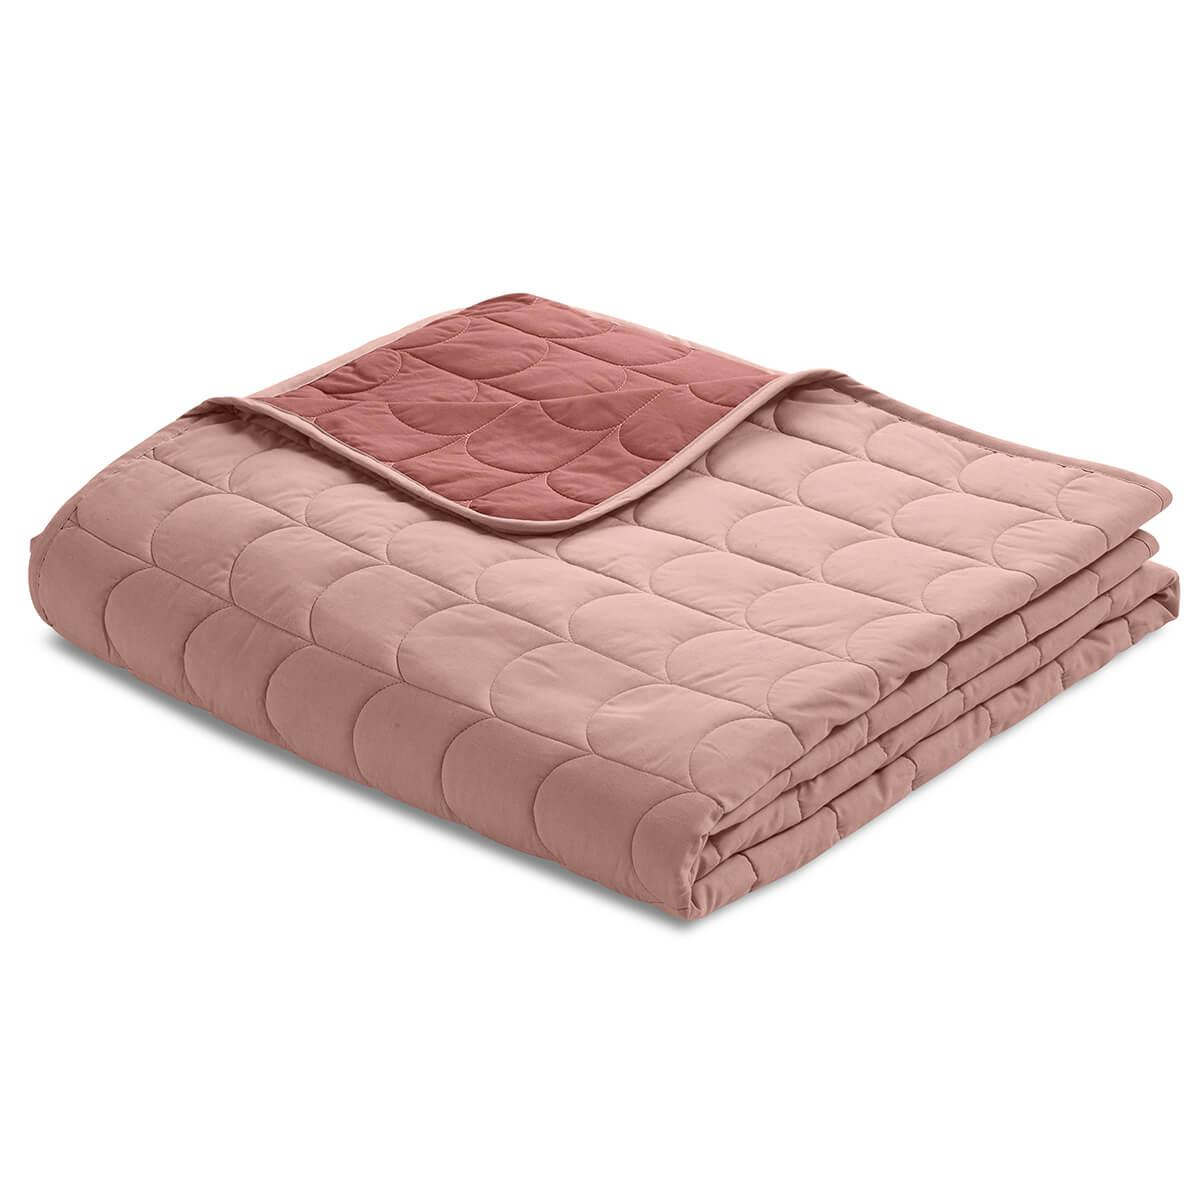 Couette 130x200cm ROOM COLLECTION Flexa light-dark dusty rose